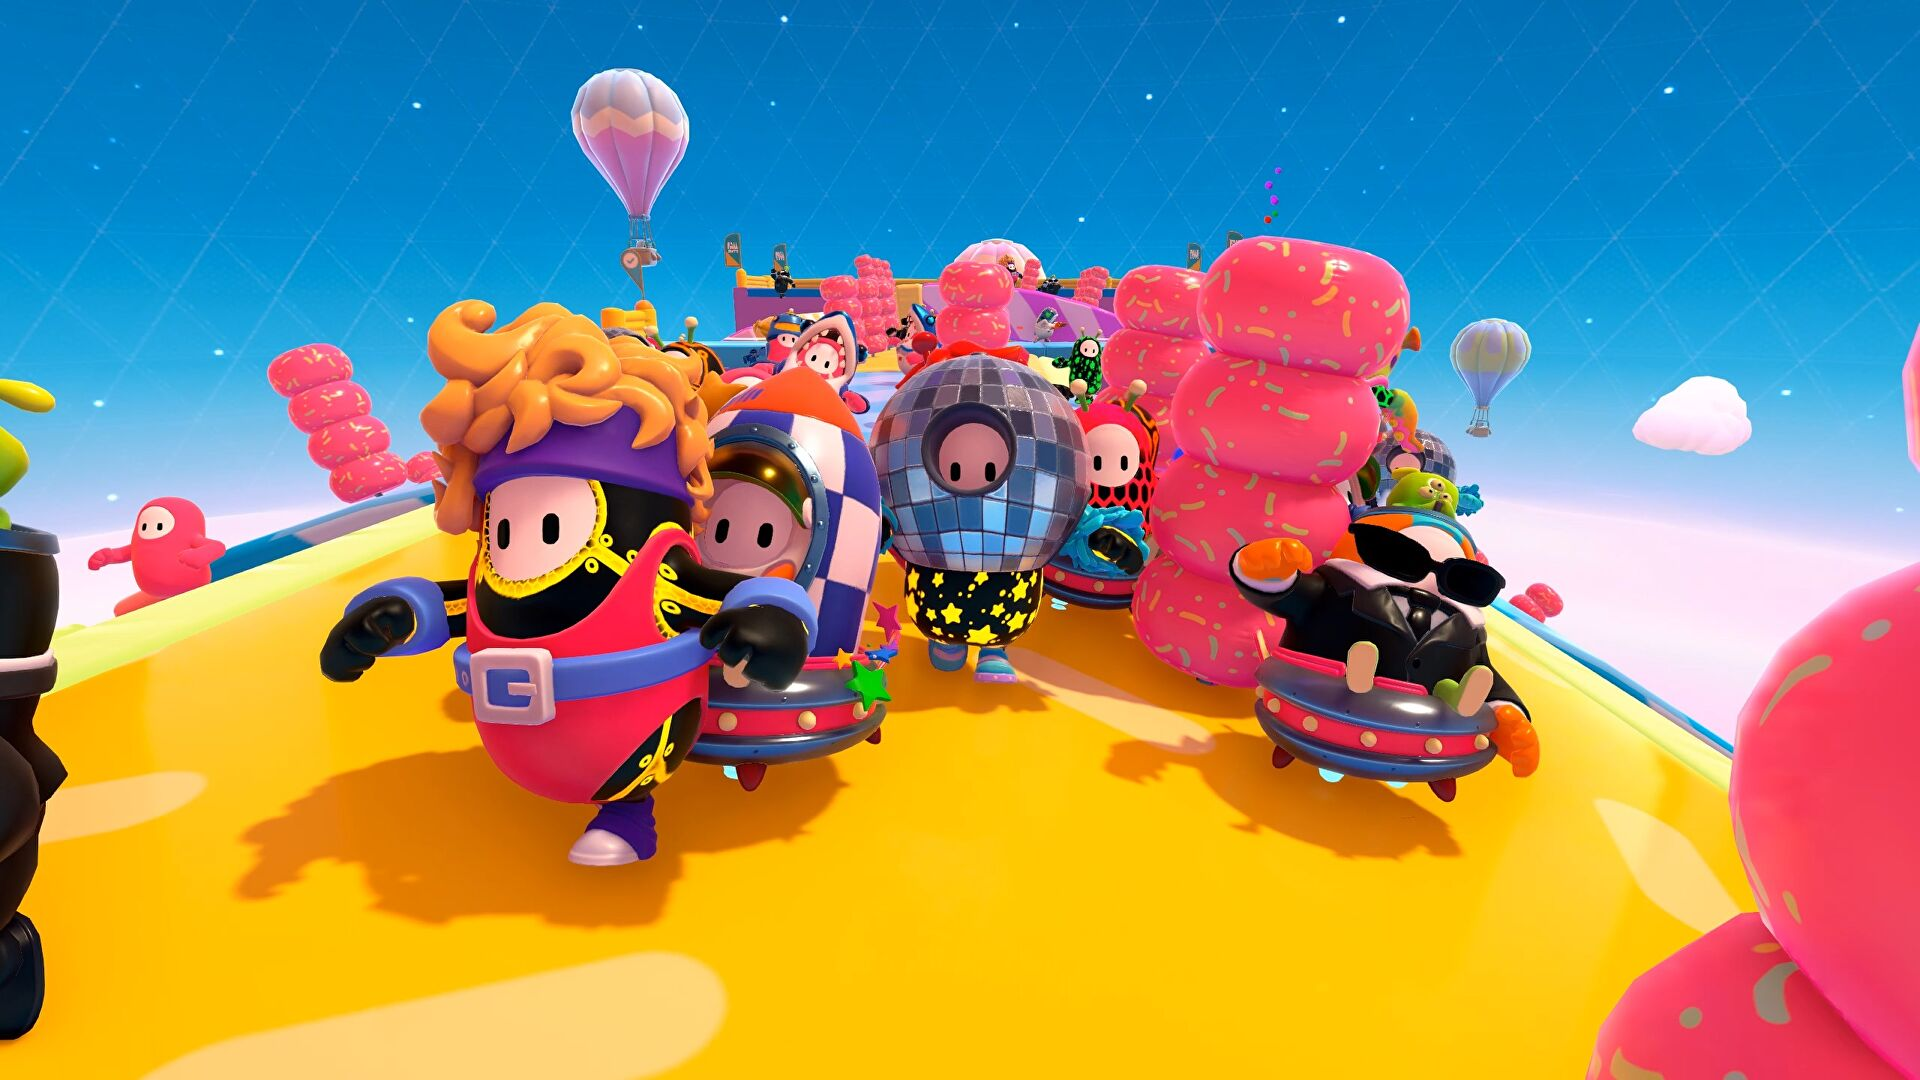 Fall Guys Season 4 launches its 80s space arcade with seven new rounds - Download Fall Guys Season 4 launches its 80s space arcade with seven new rounds for FREE - Free Cheats for Games